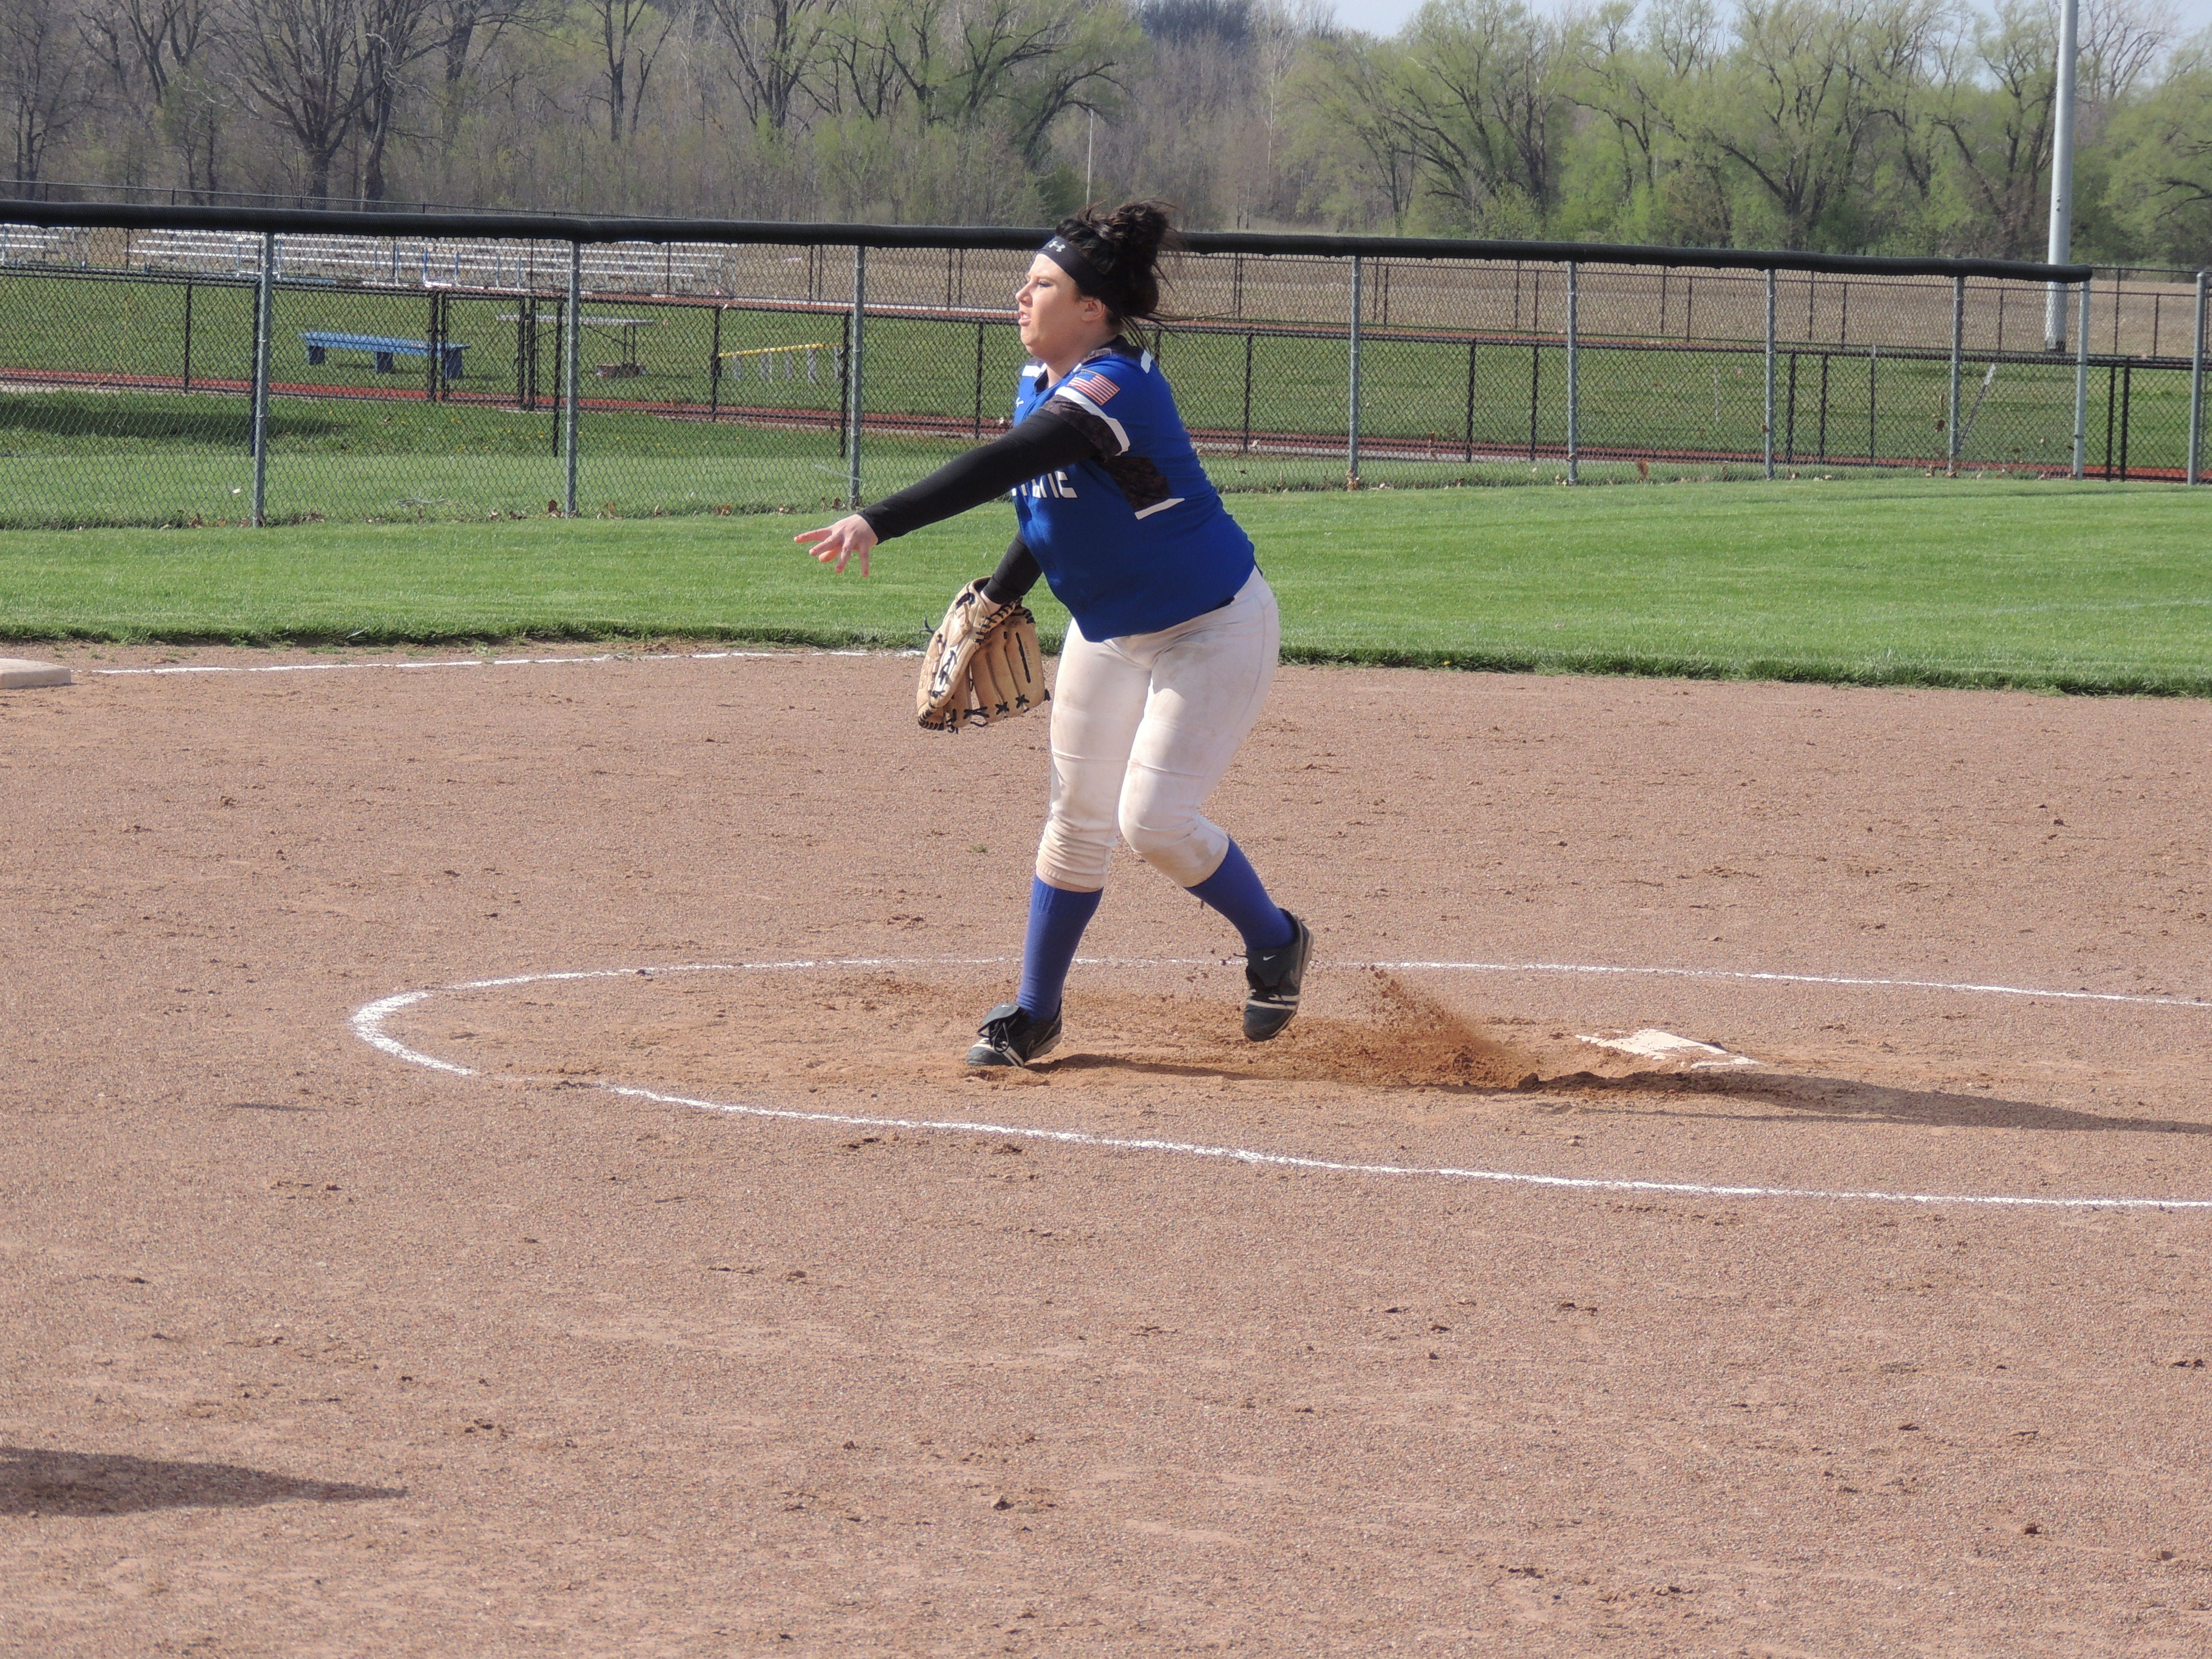 Crestline junior Caylee Jackson delivers a pitch in the second inning of the Lady Dogs' 14-7 win against Buckeye Central.